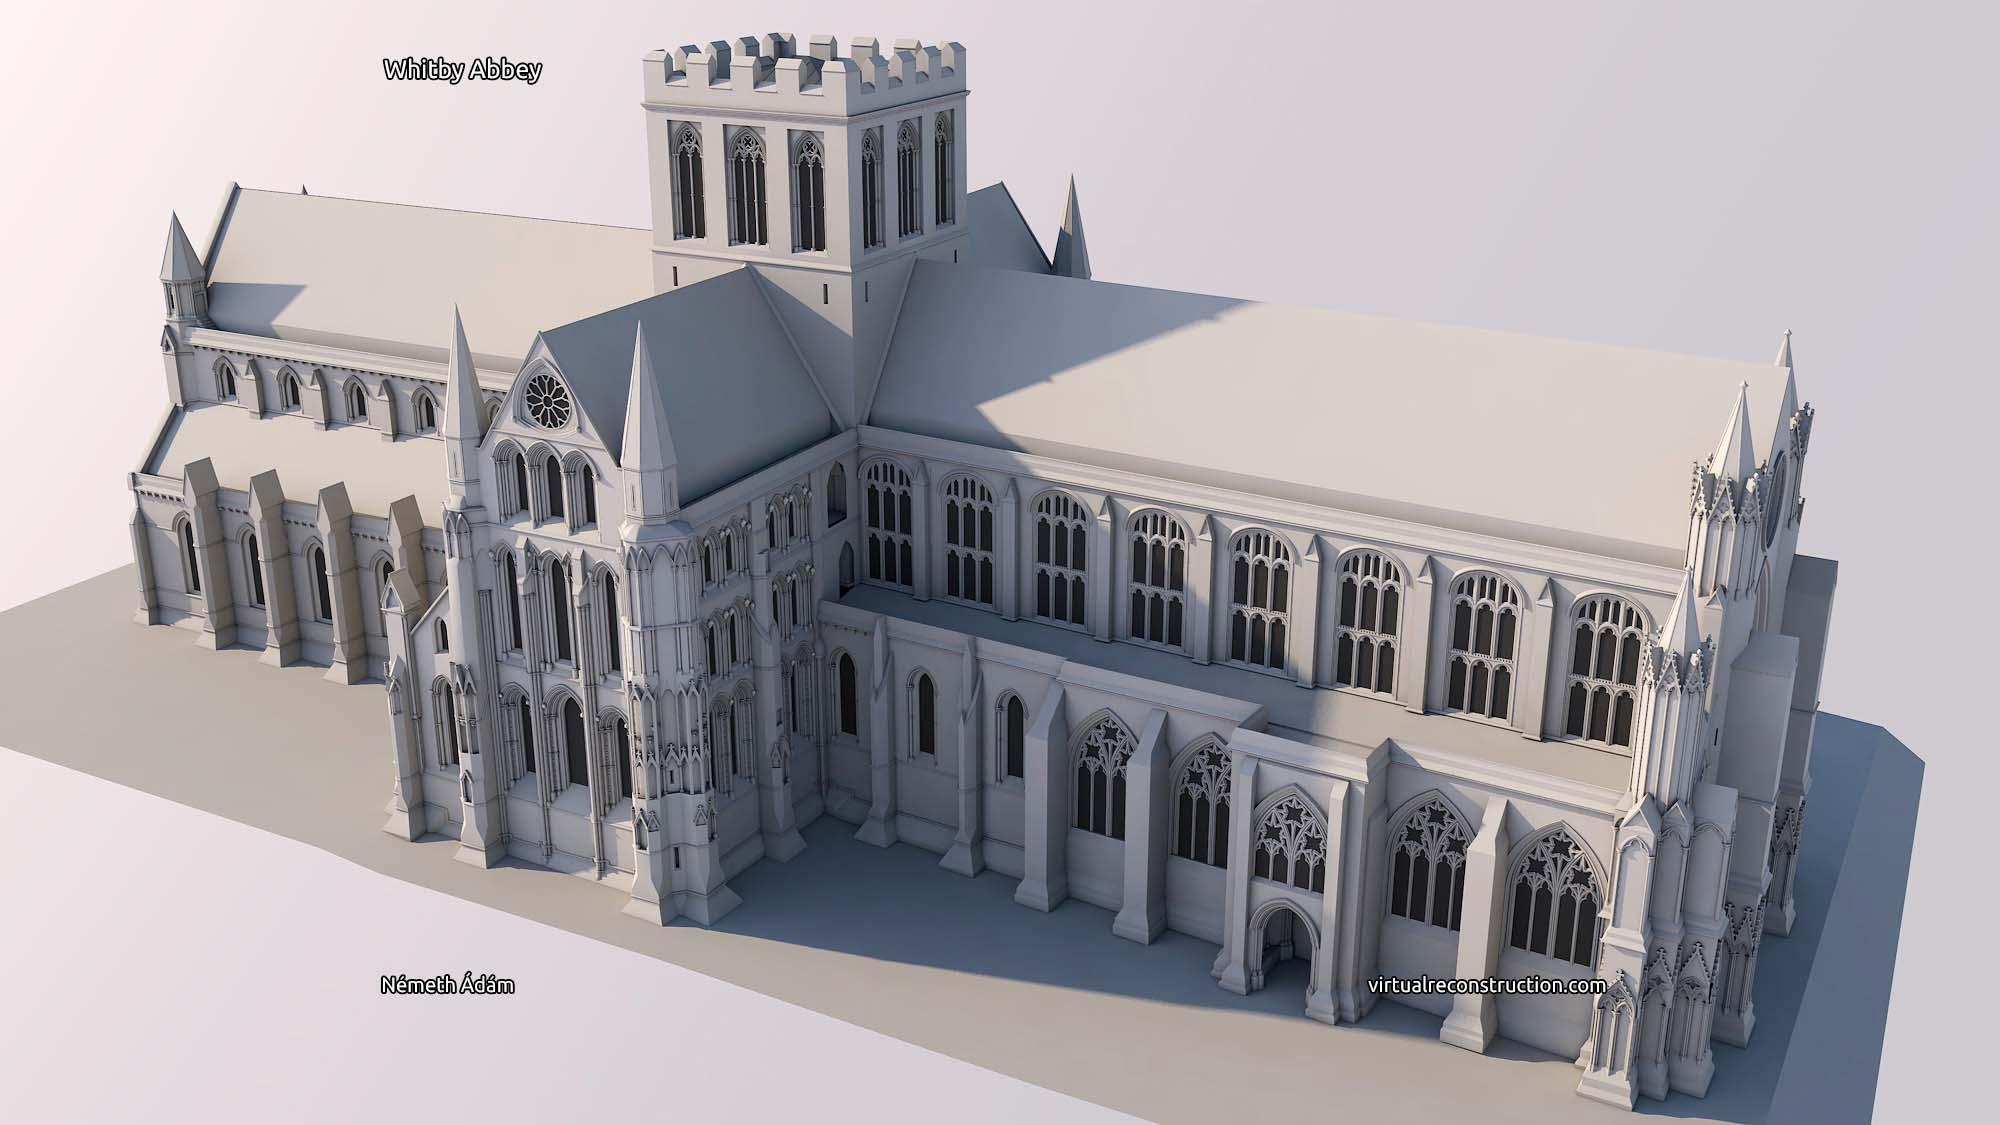 Virtual reconstruction of the Whitby Abbe